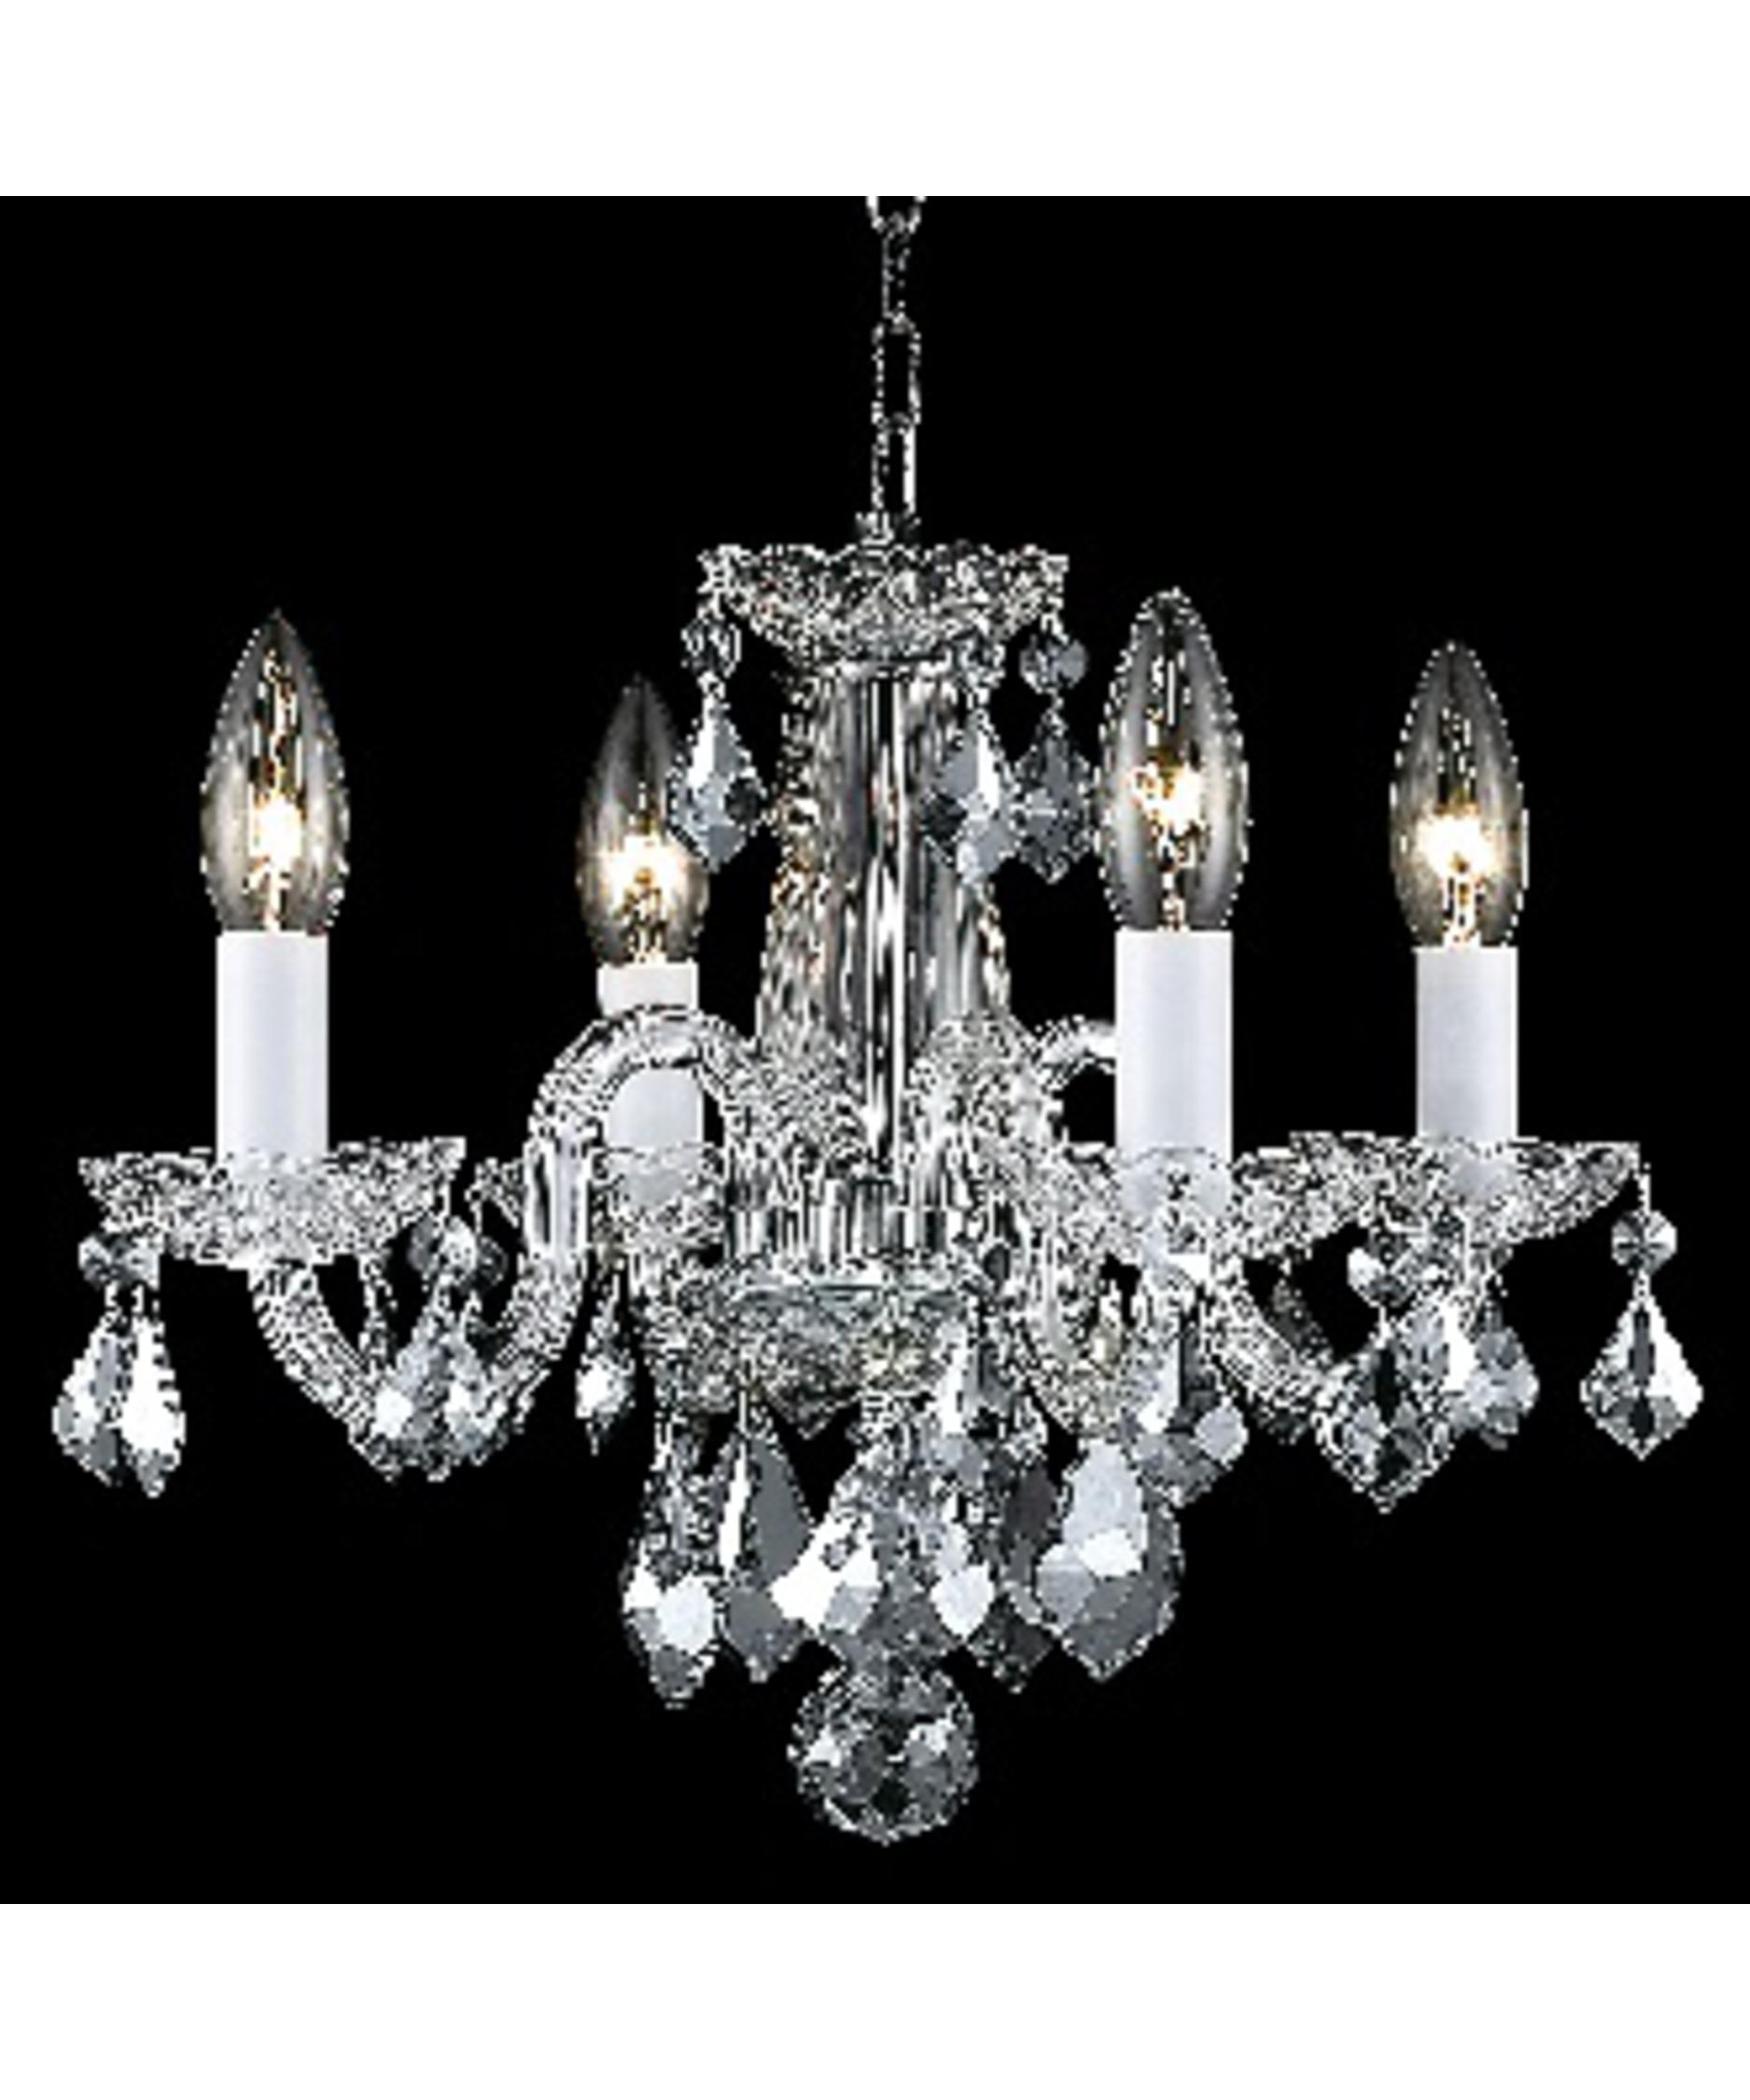 Elegant Lighting 7804d15 Rococo 15 Inch Wide 4 Light Mini Pertaining To Mini Crystal Chandeliers (Image 11 of 25)